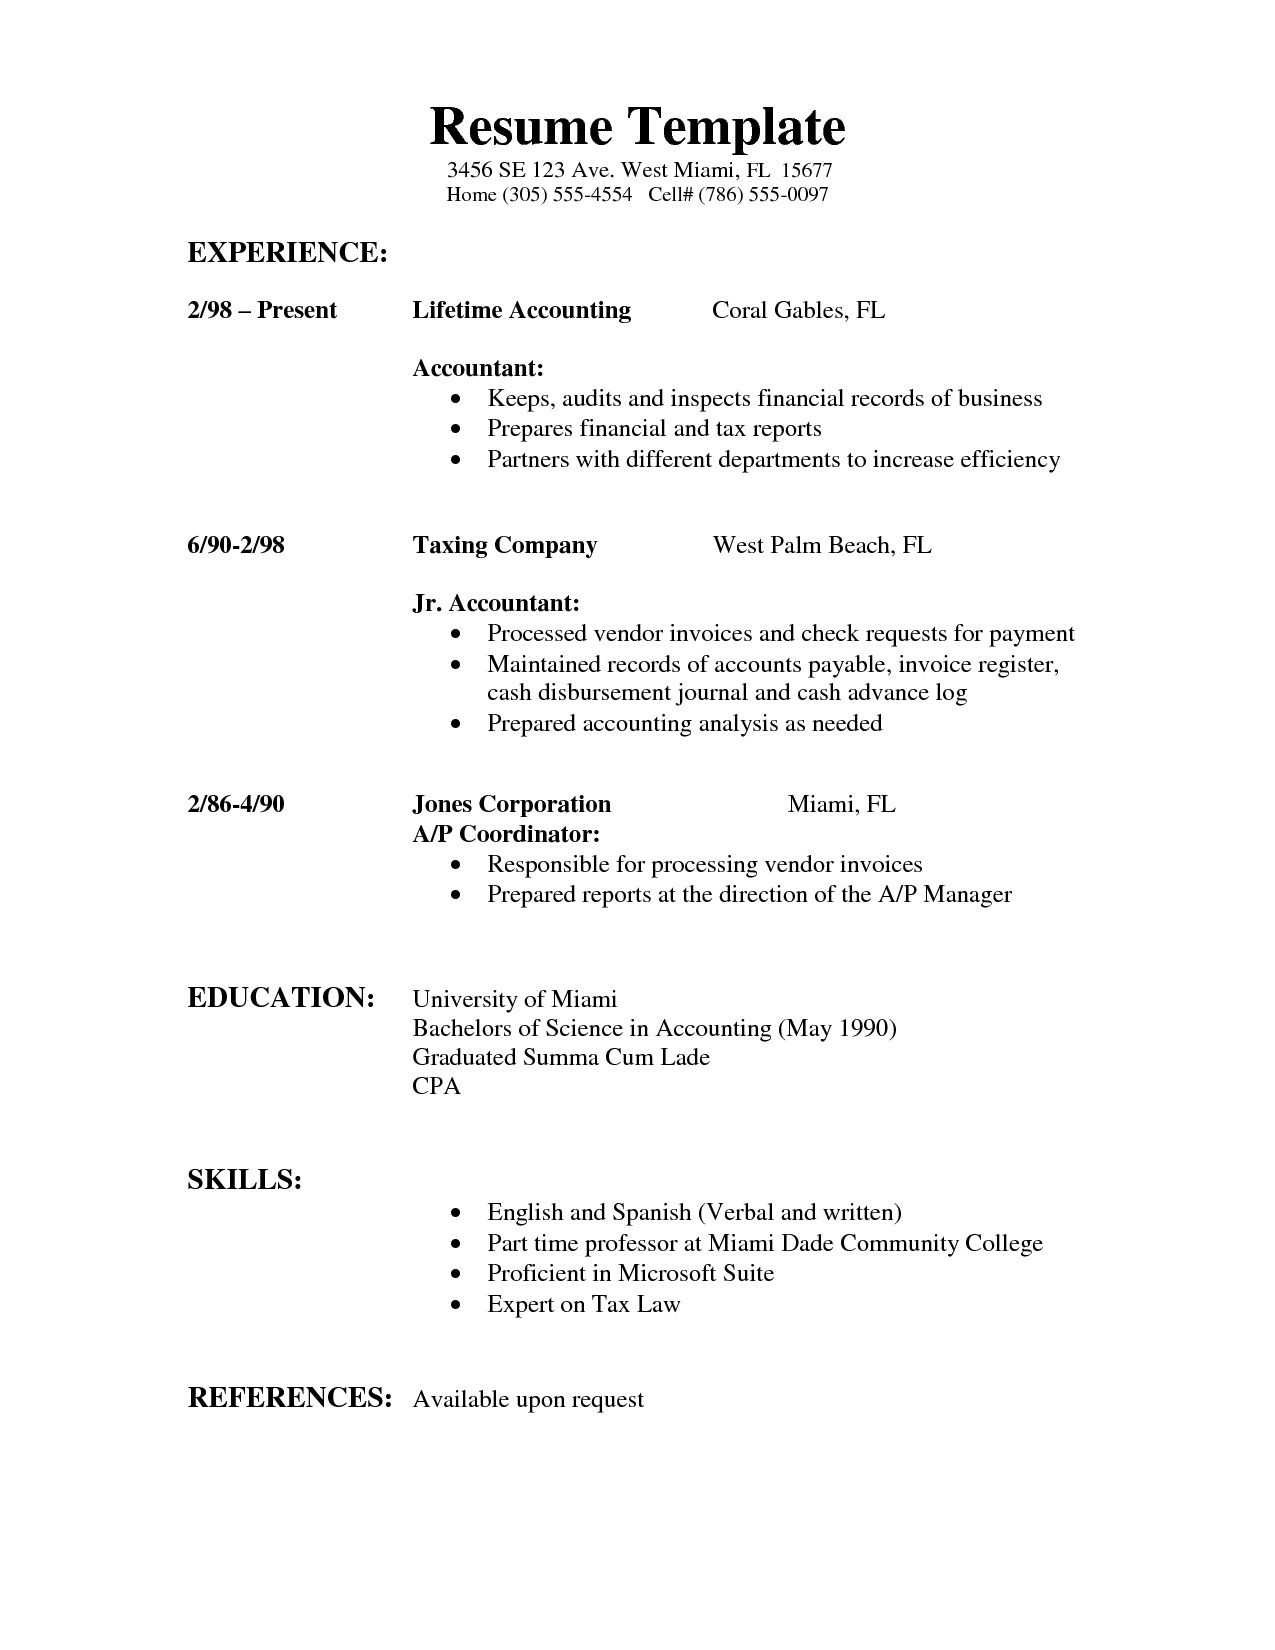 How To Make A Resume On Word Enchanting Simple Resume Template Download  Simple Resume Template Download We